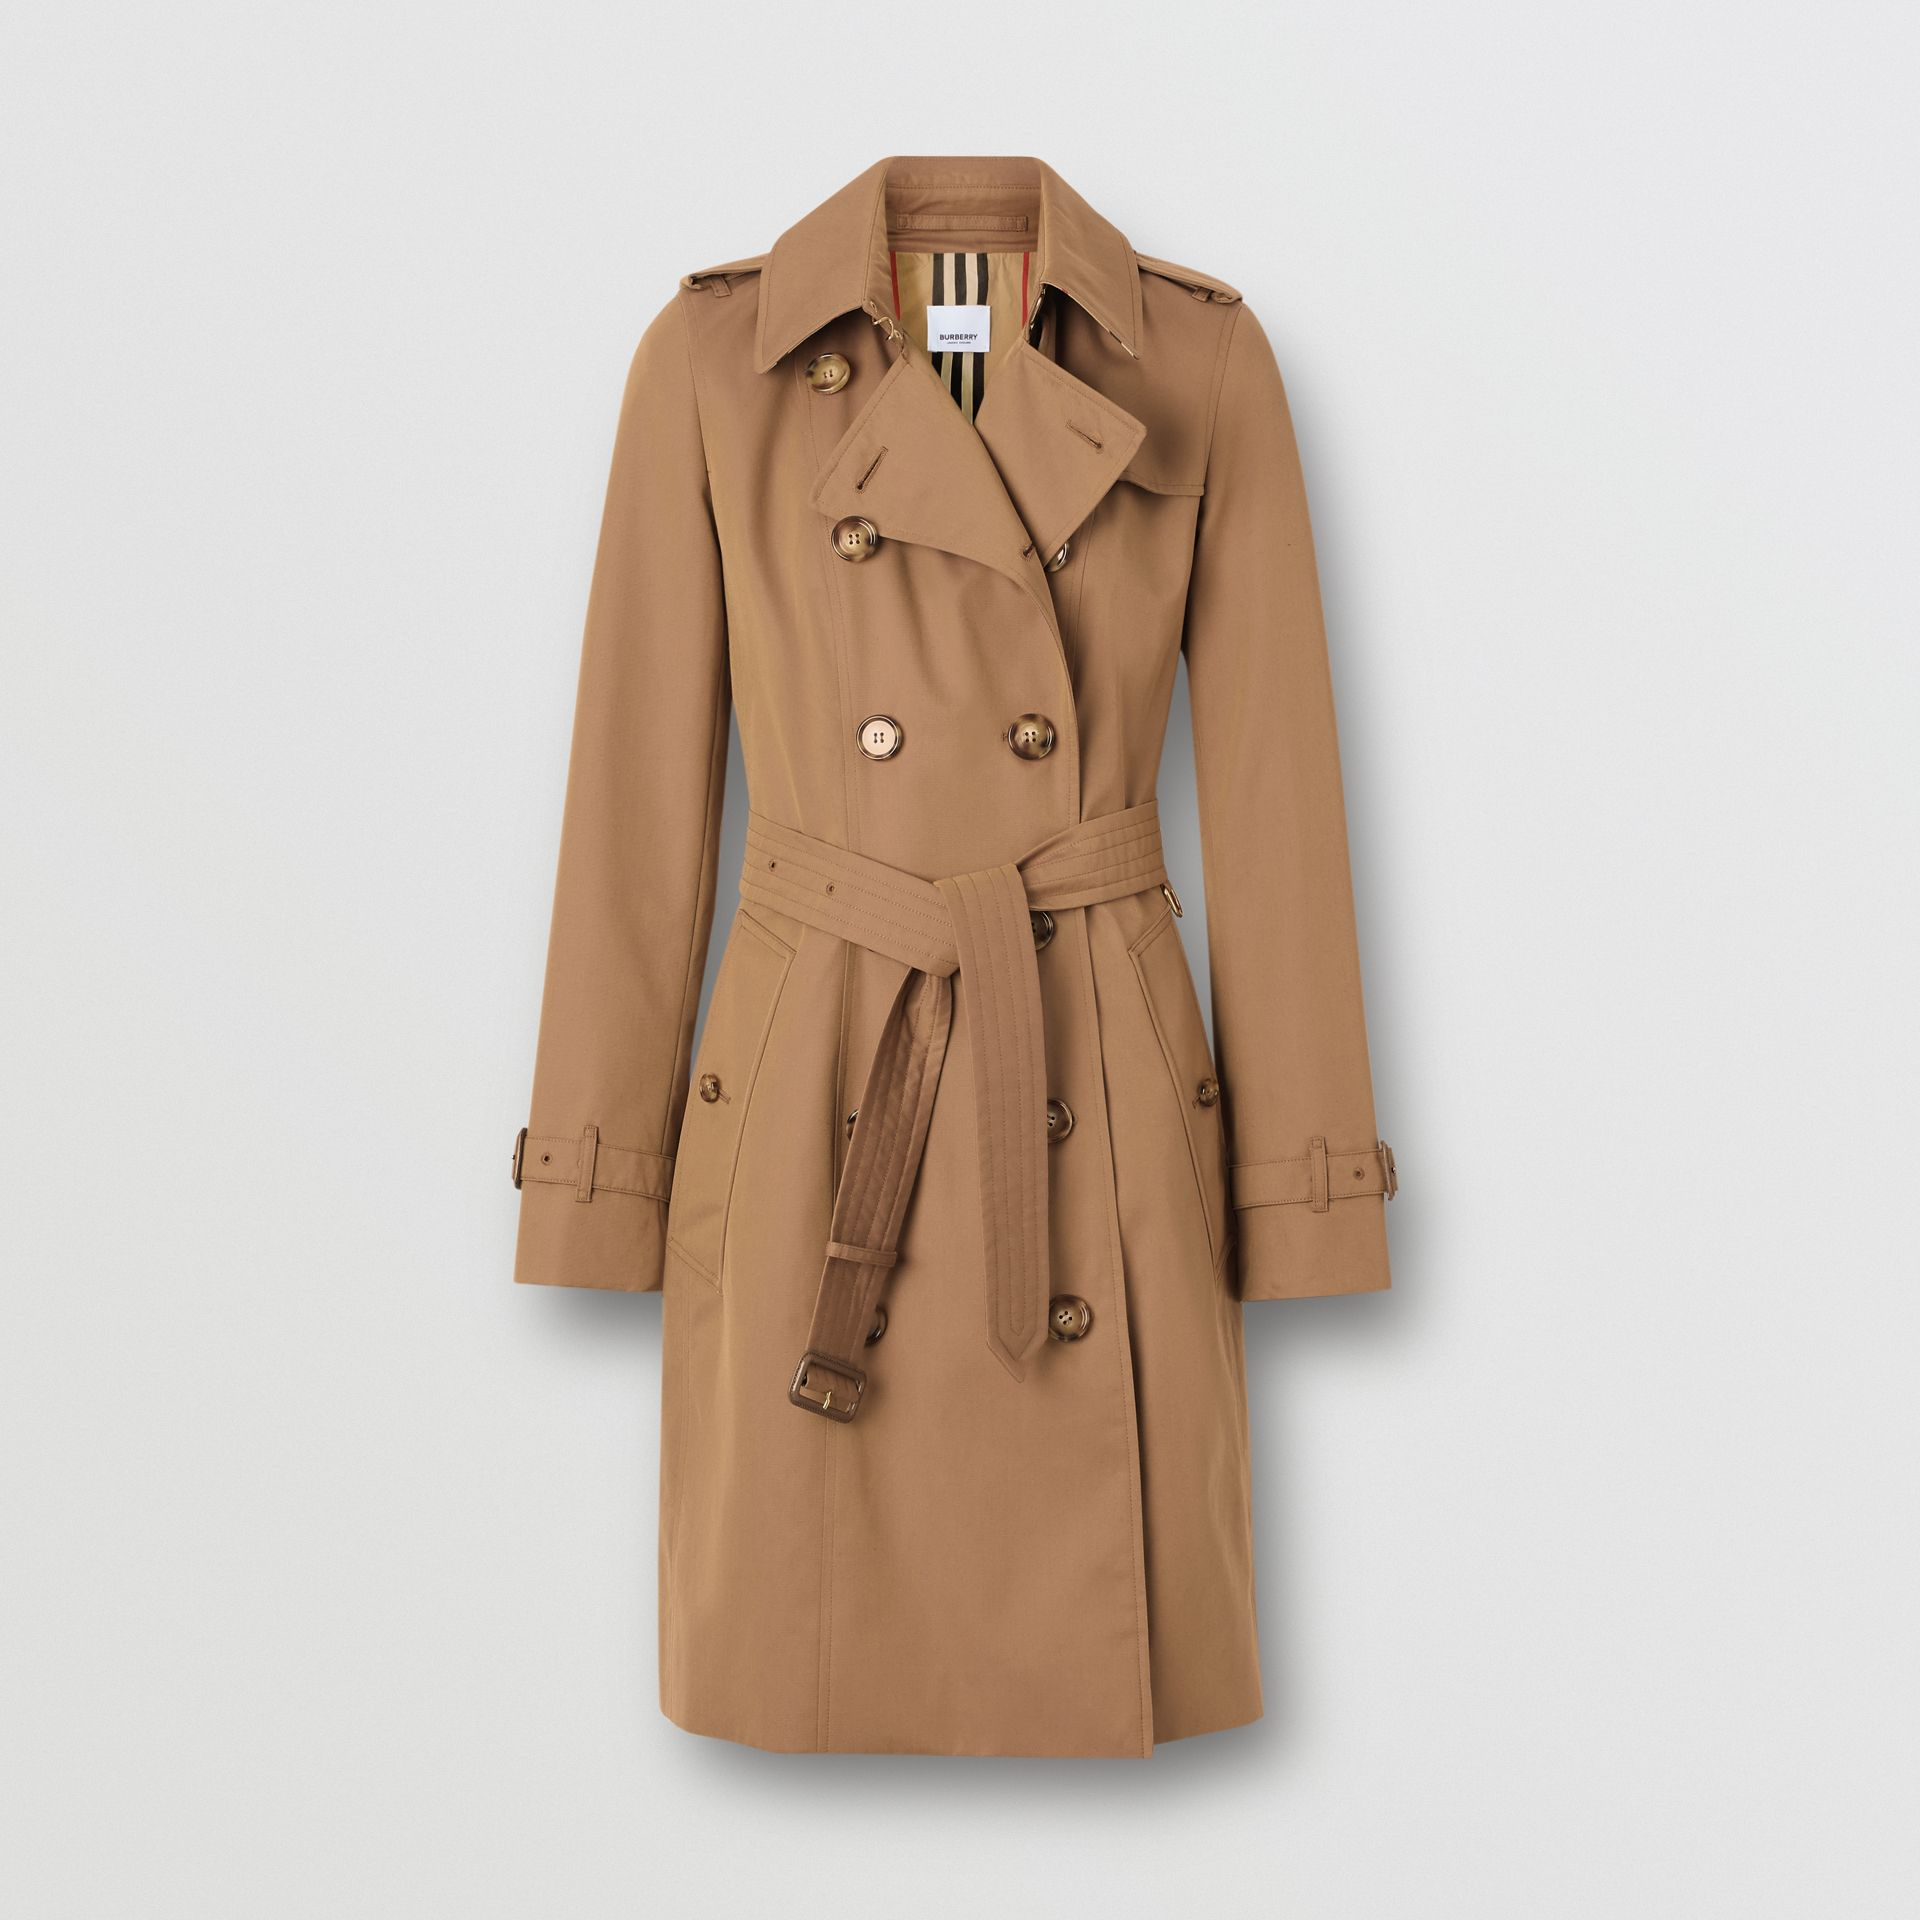 Cotton Gabardine Trench Coat in Warm Taupe - Women | Burberry - gallery image 3